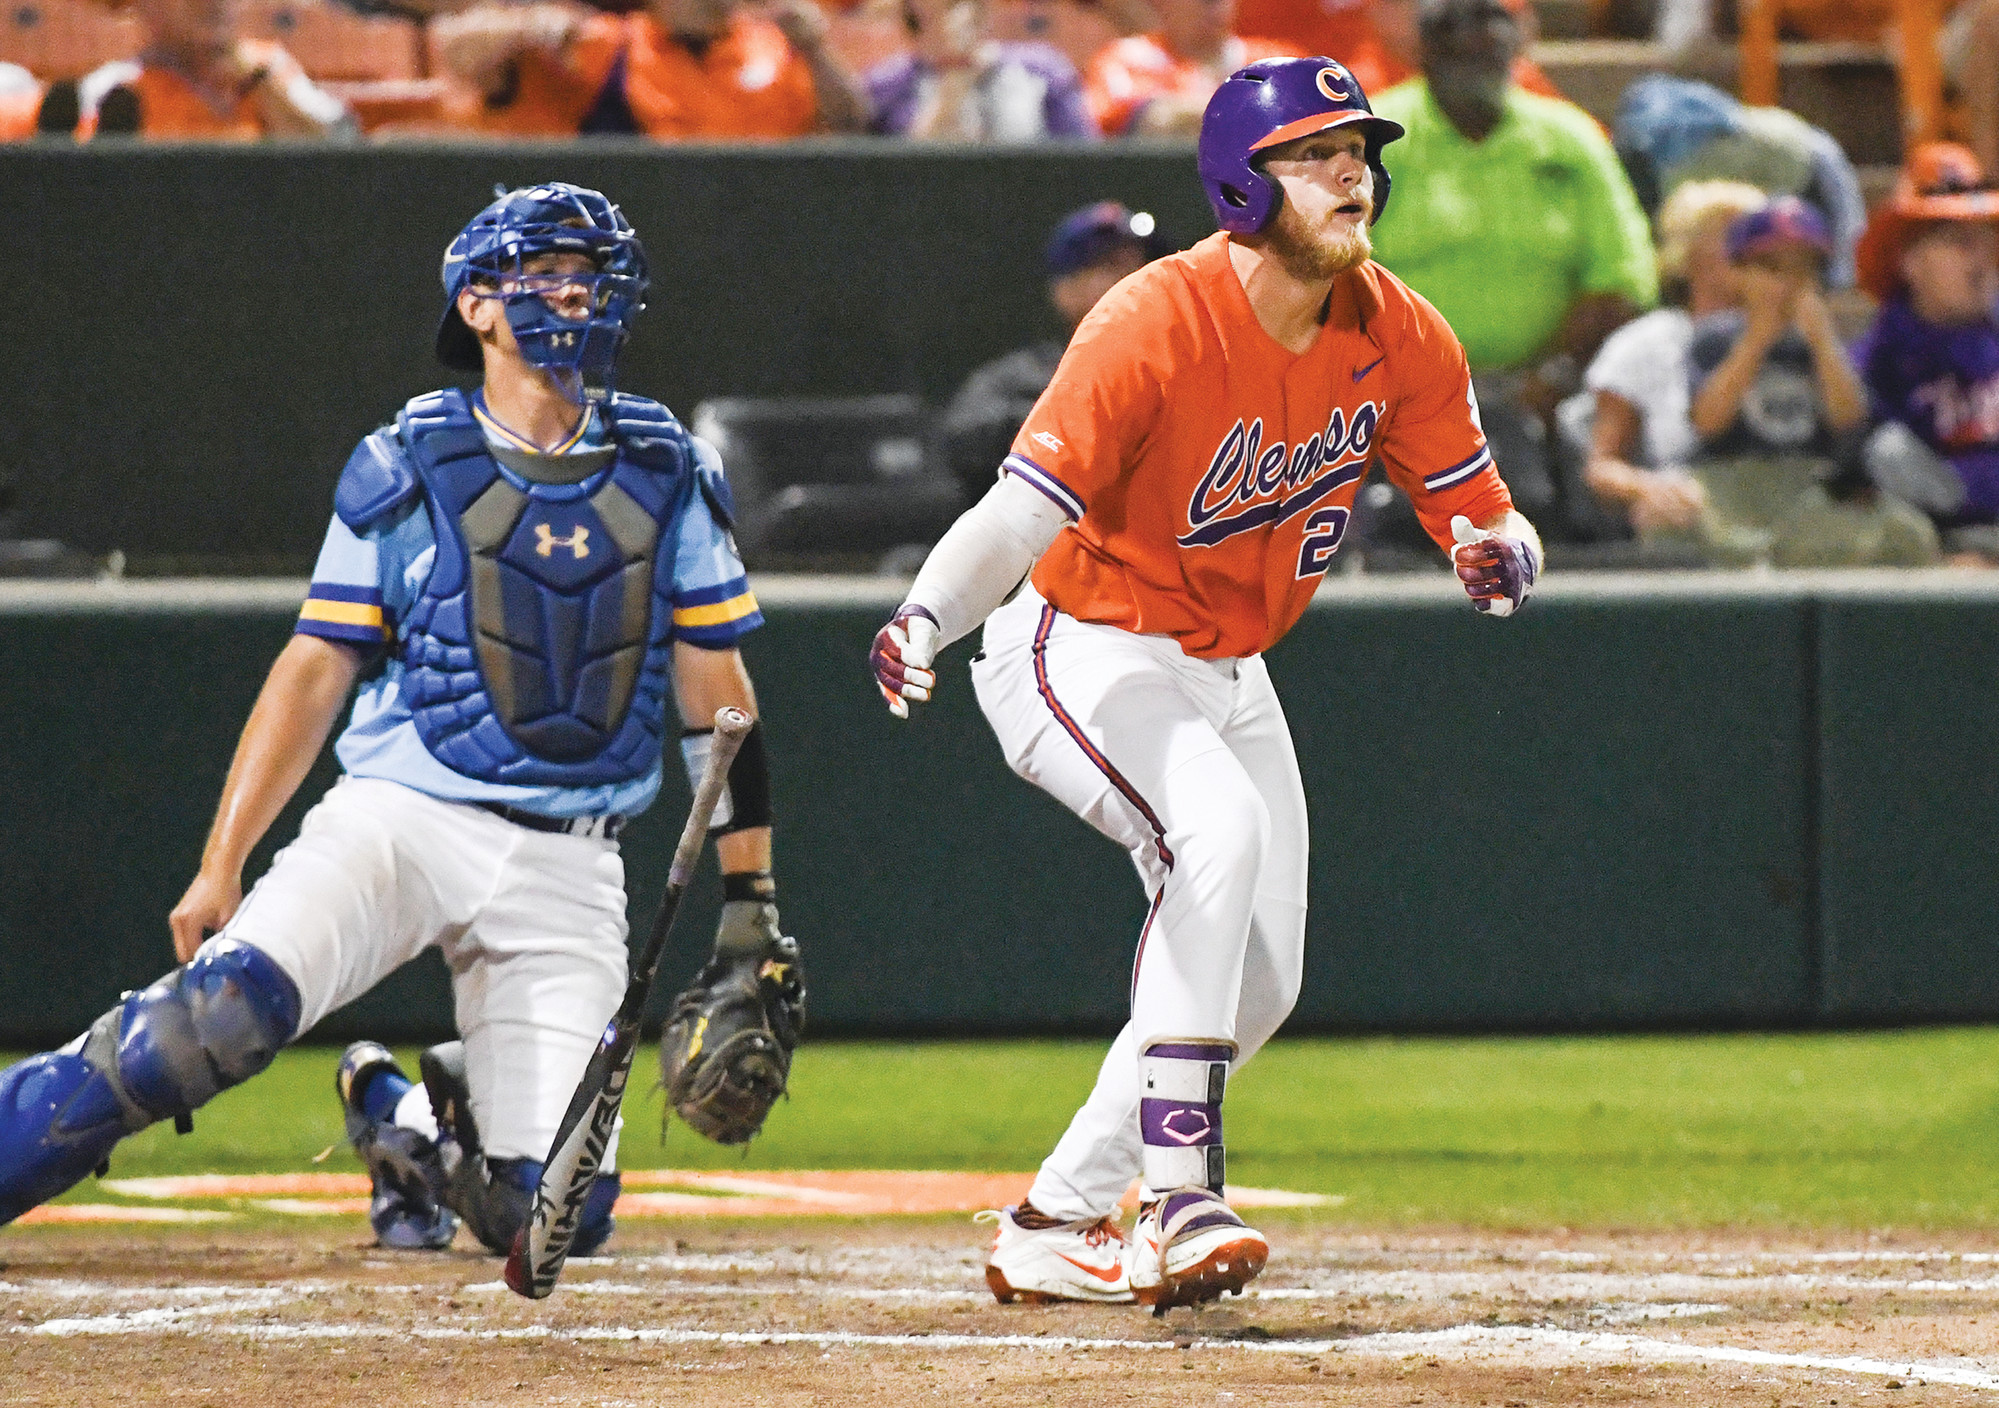 Clemson's Seth Beer (28) watches his home run against Morehead State during the bottom of the fifth inning in an NCAA college baseball tournament regional game in Clemson on Friday.